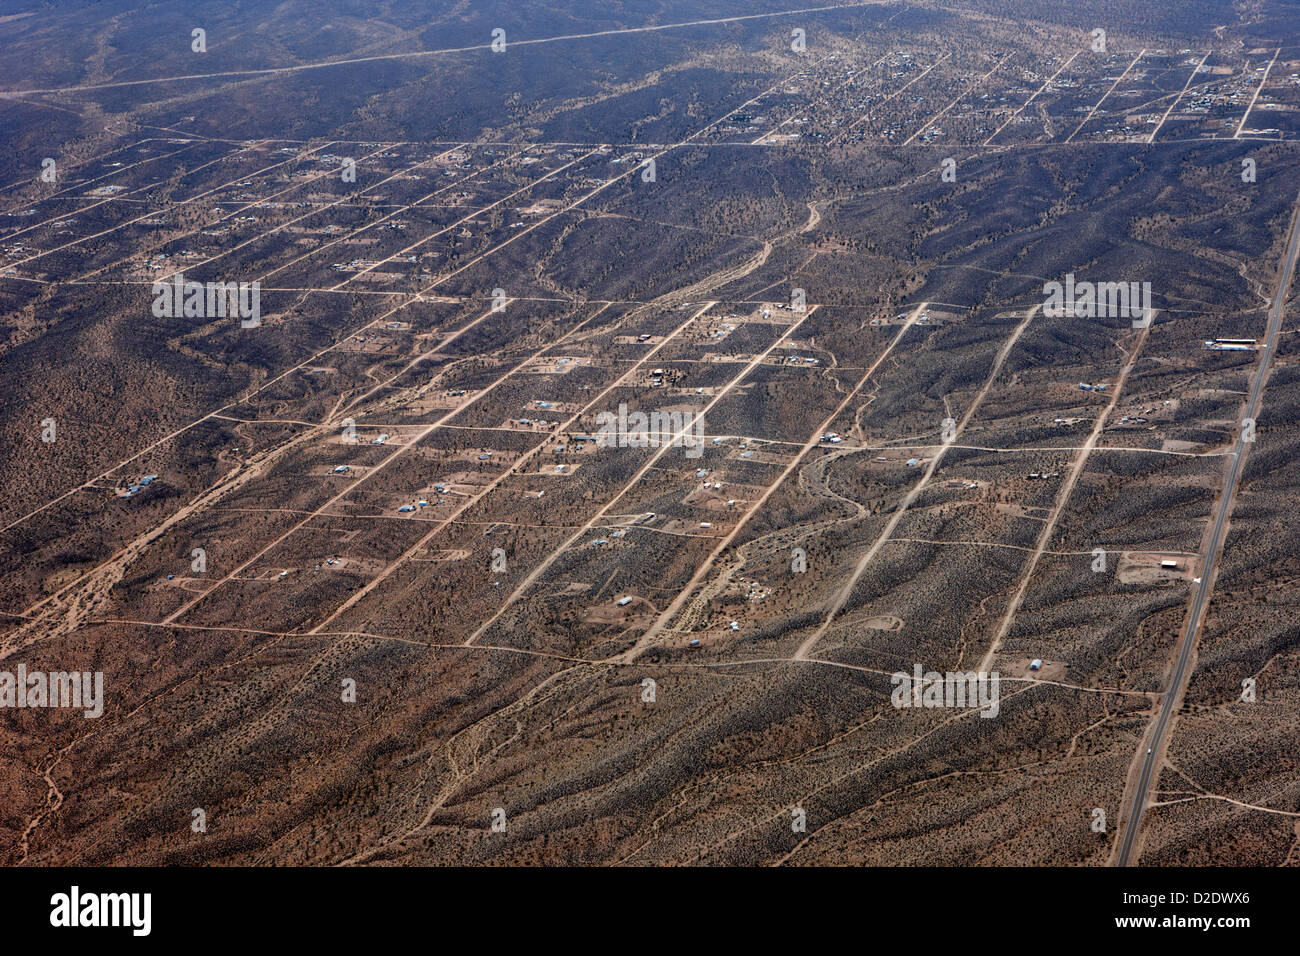 block layouts of streets in sparsely populated area of meadview arizona usa - Stock Image